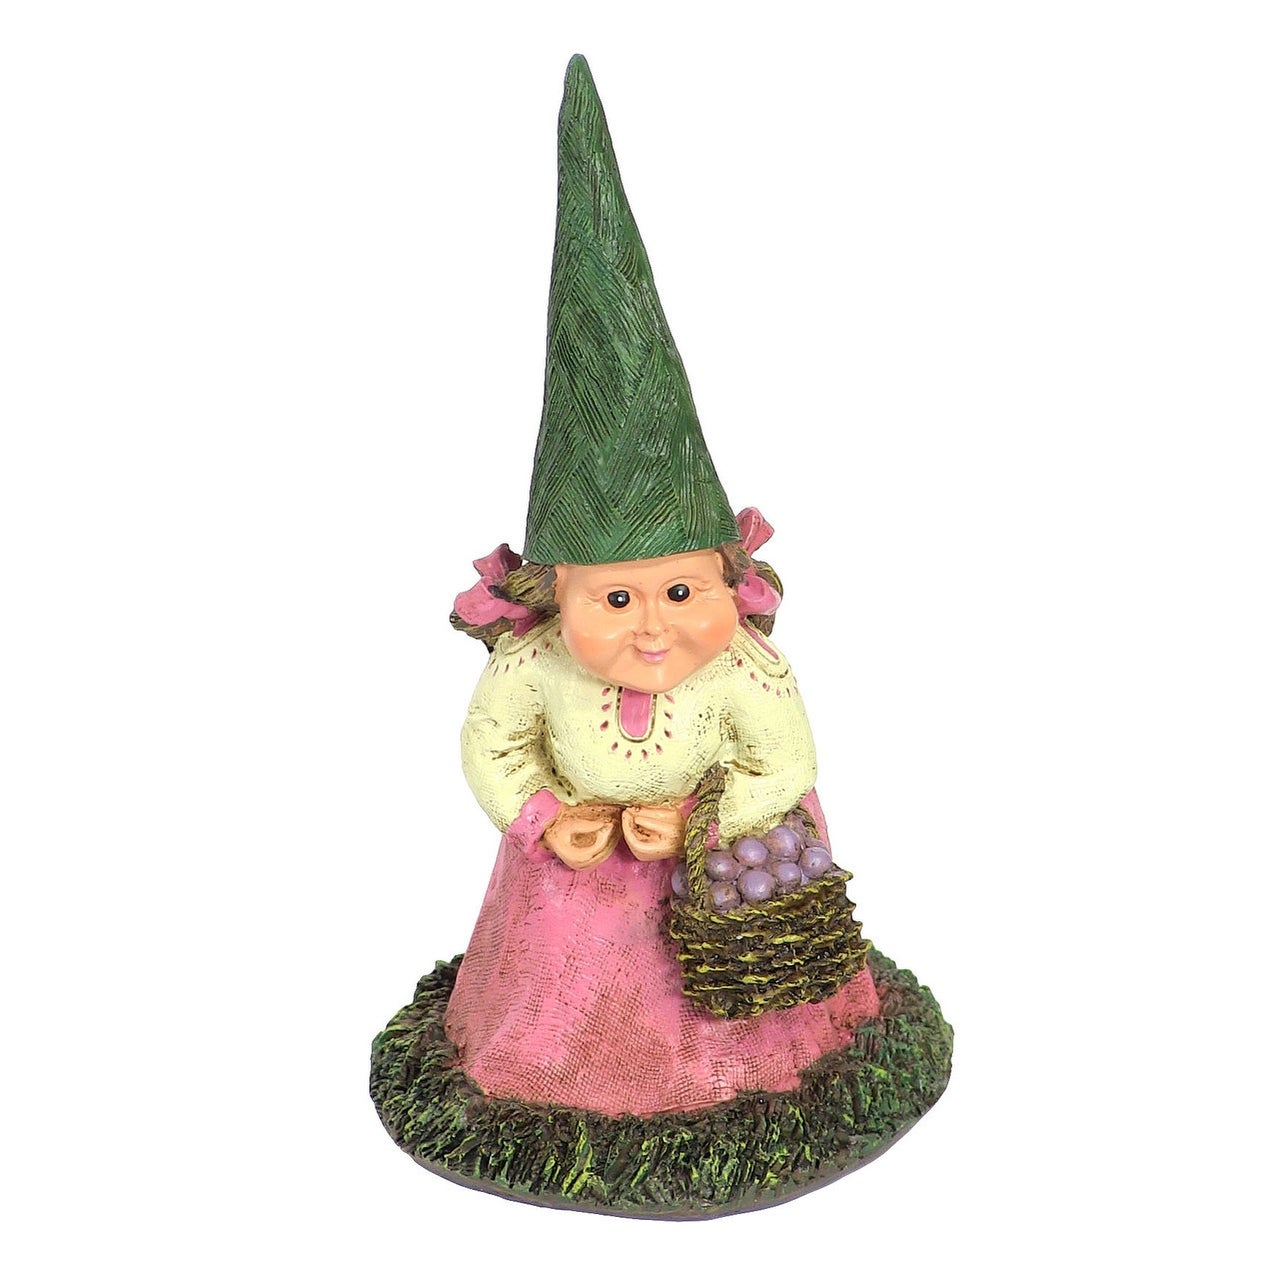 Sunnydaze Woodland Garden Gnomes - Style Options Available, Must Choose - Thumbnail 6